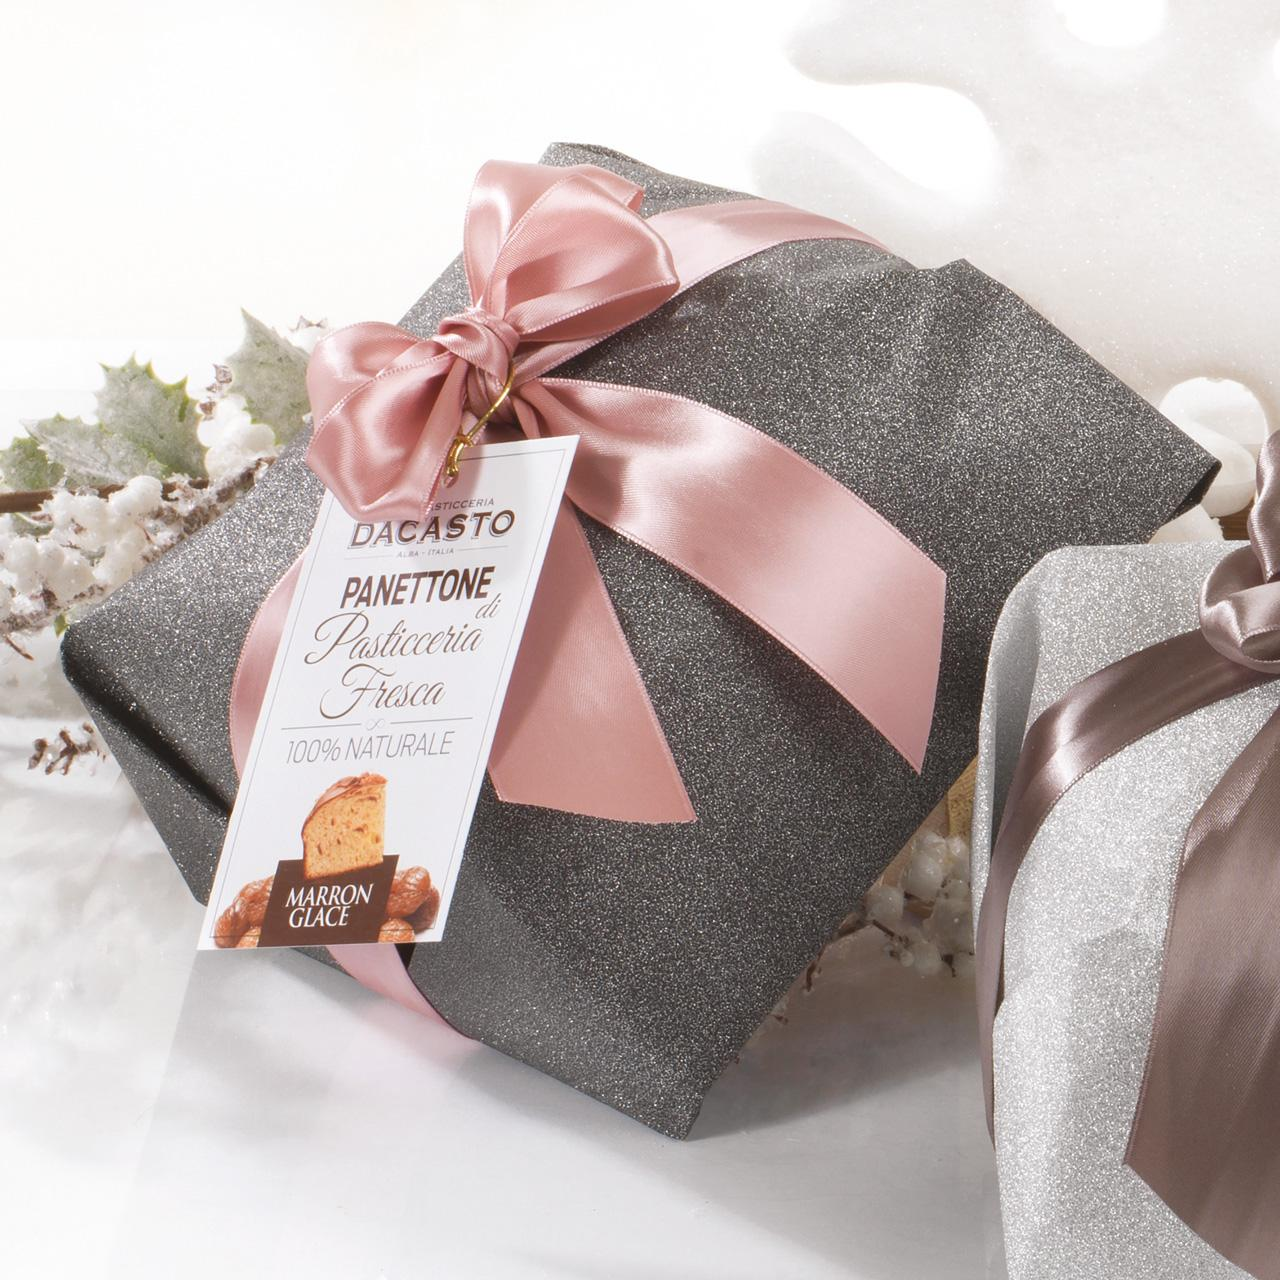 Panettone With Marron Glacé (black Wrapping Paper) And Traditional Panettone (black Wrapping Paper)